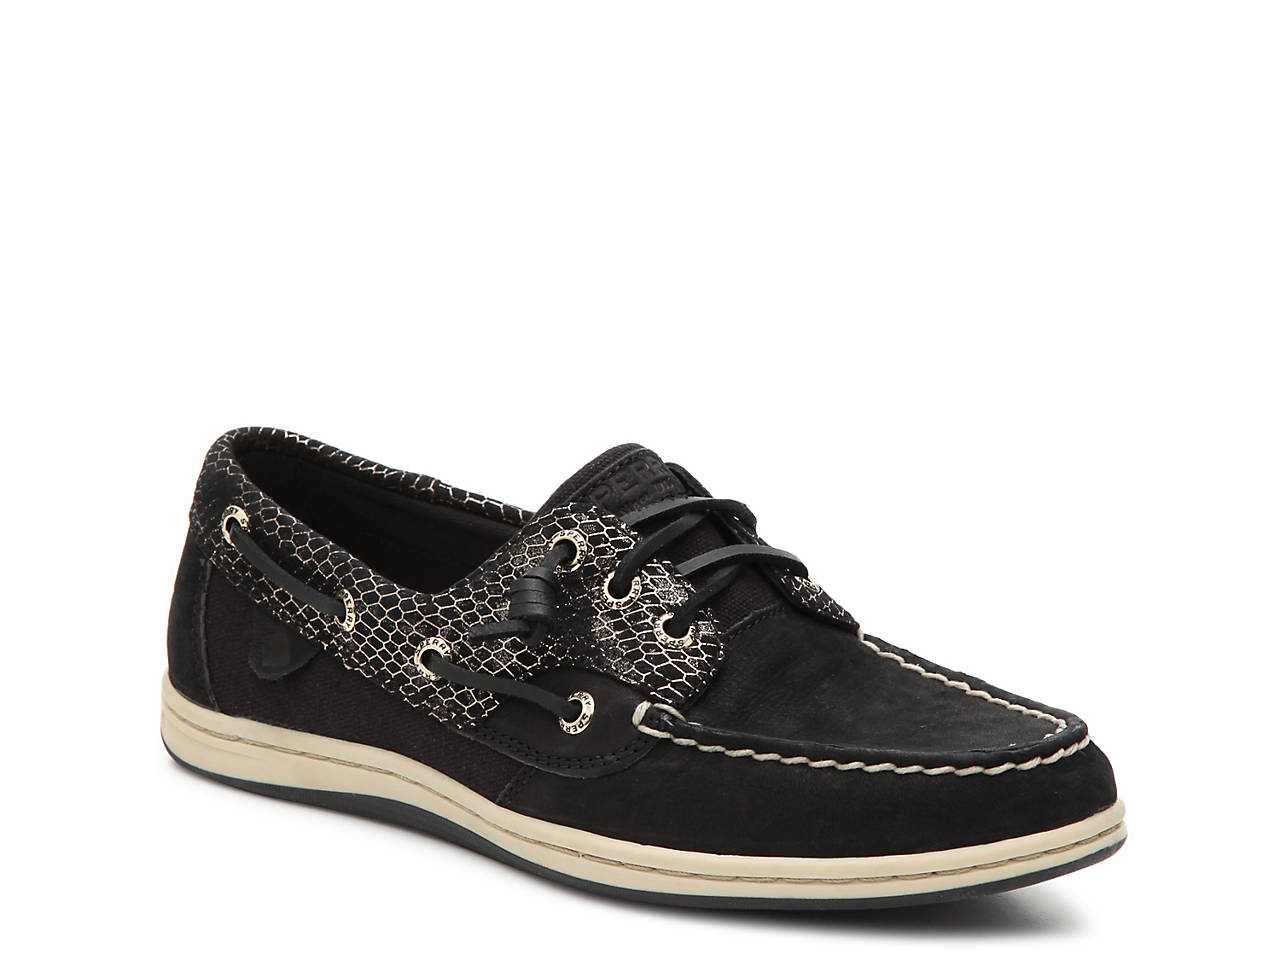 d43fc1f7a64ed4 Sperry Top-Sider Songfish Boat Shoe Women s Shoes